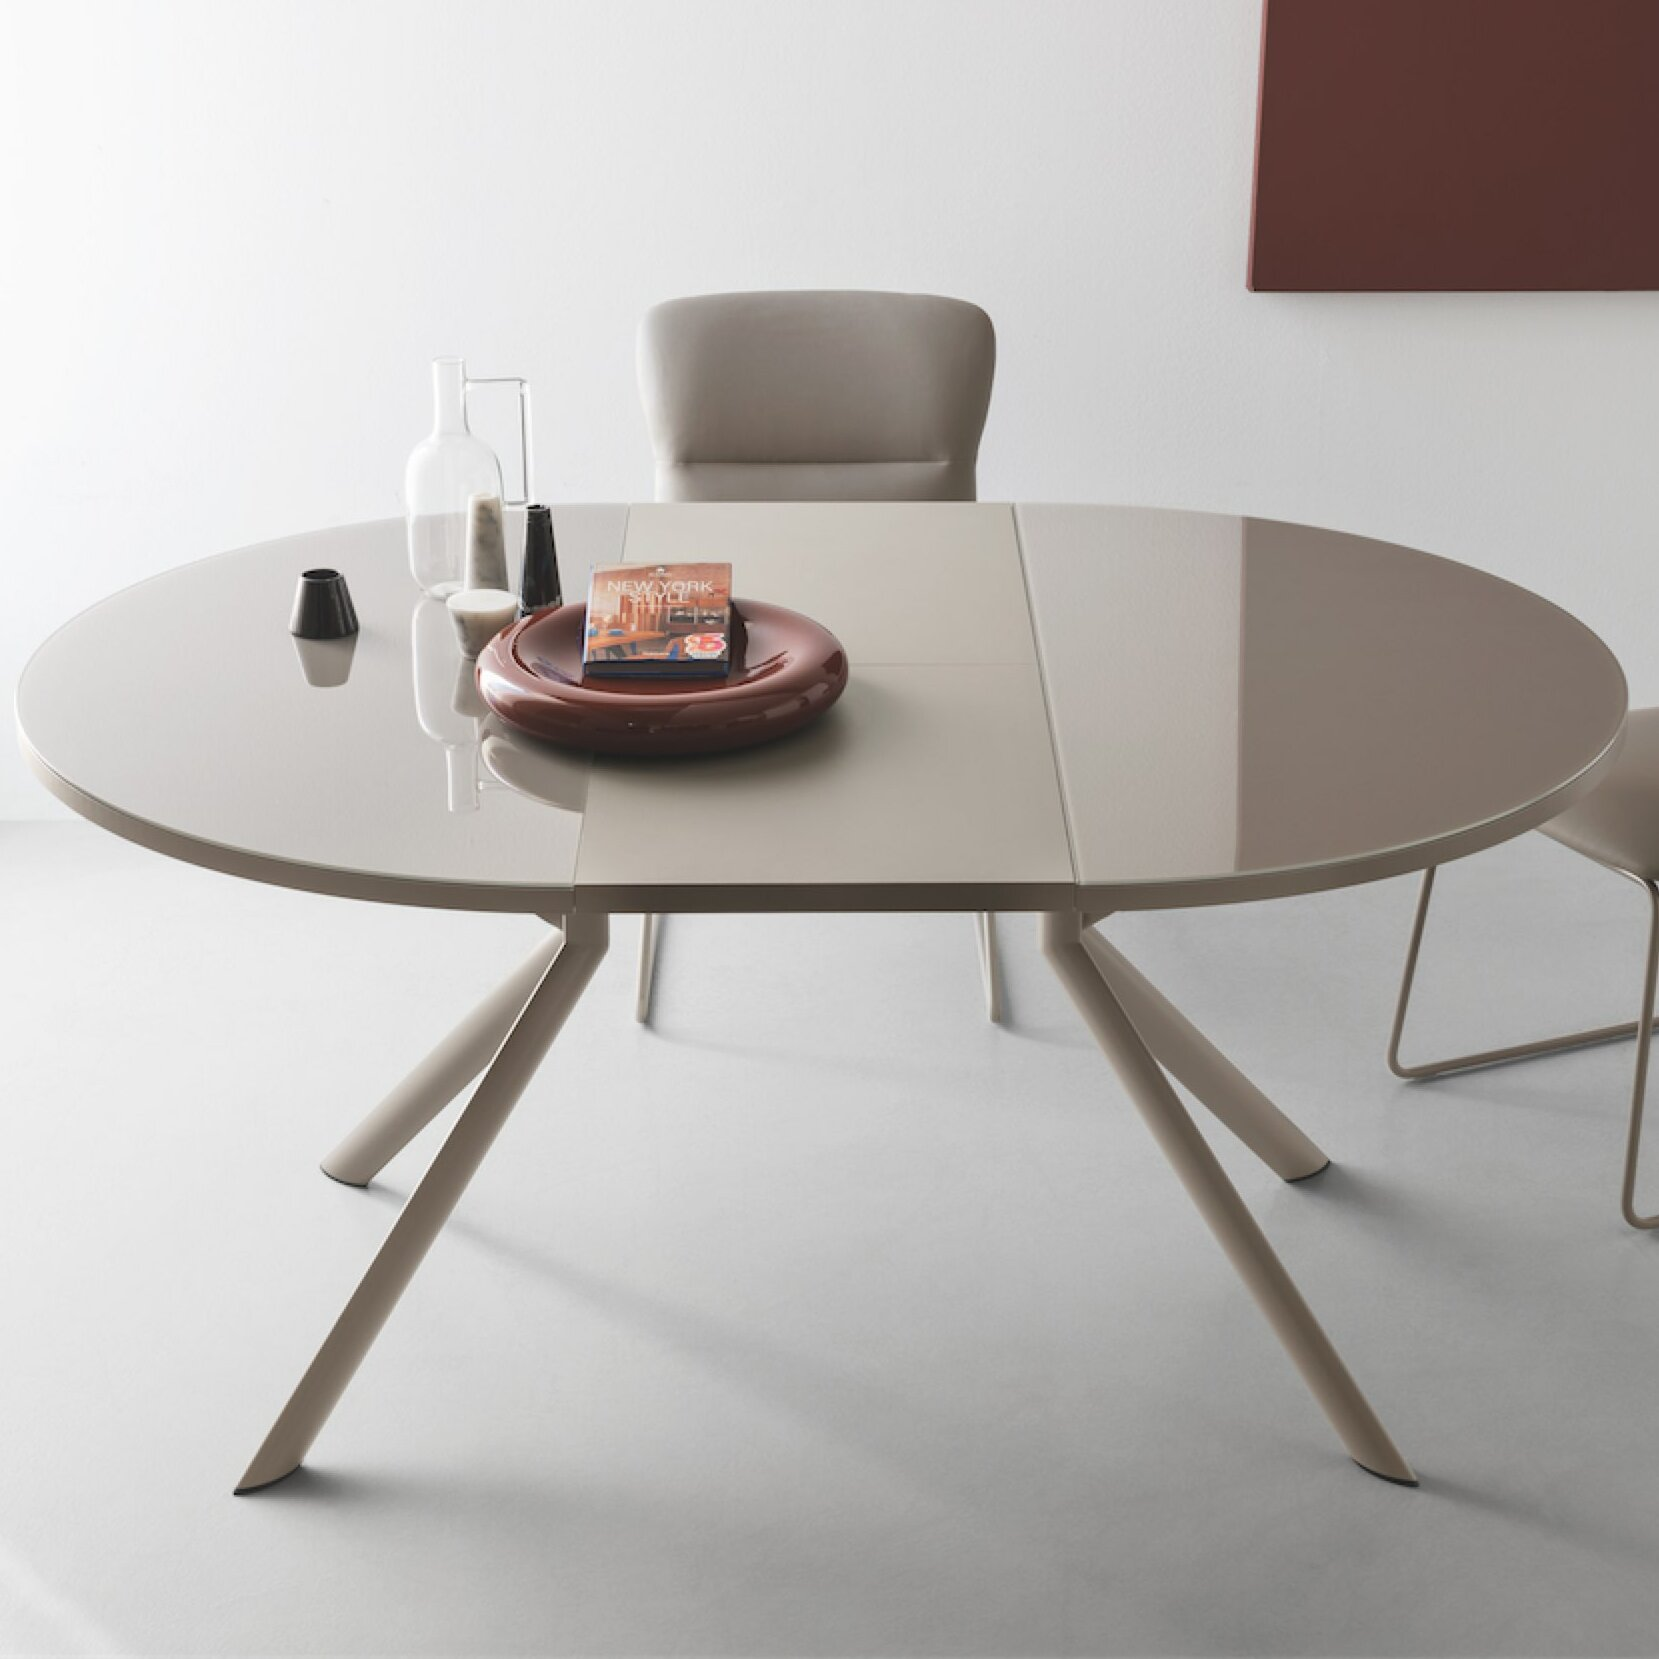 round extendable dining table Orren Ellis Meadowbrook Round Extendable Dining Table | Wayfair round extendable dining table